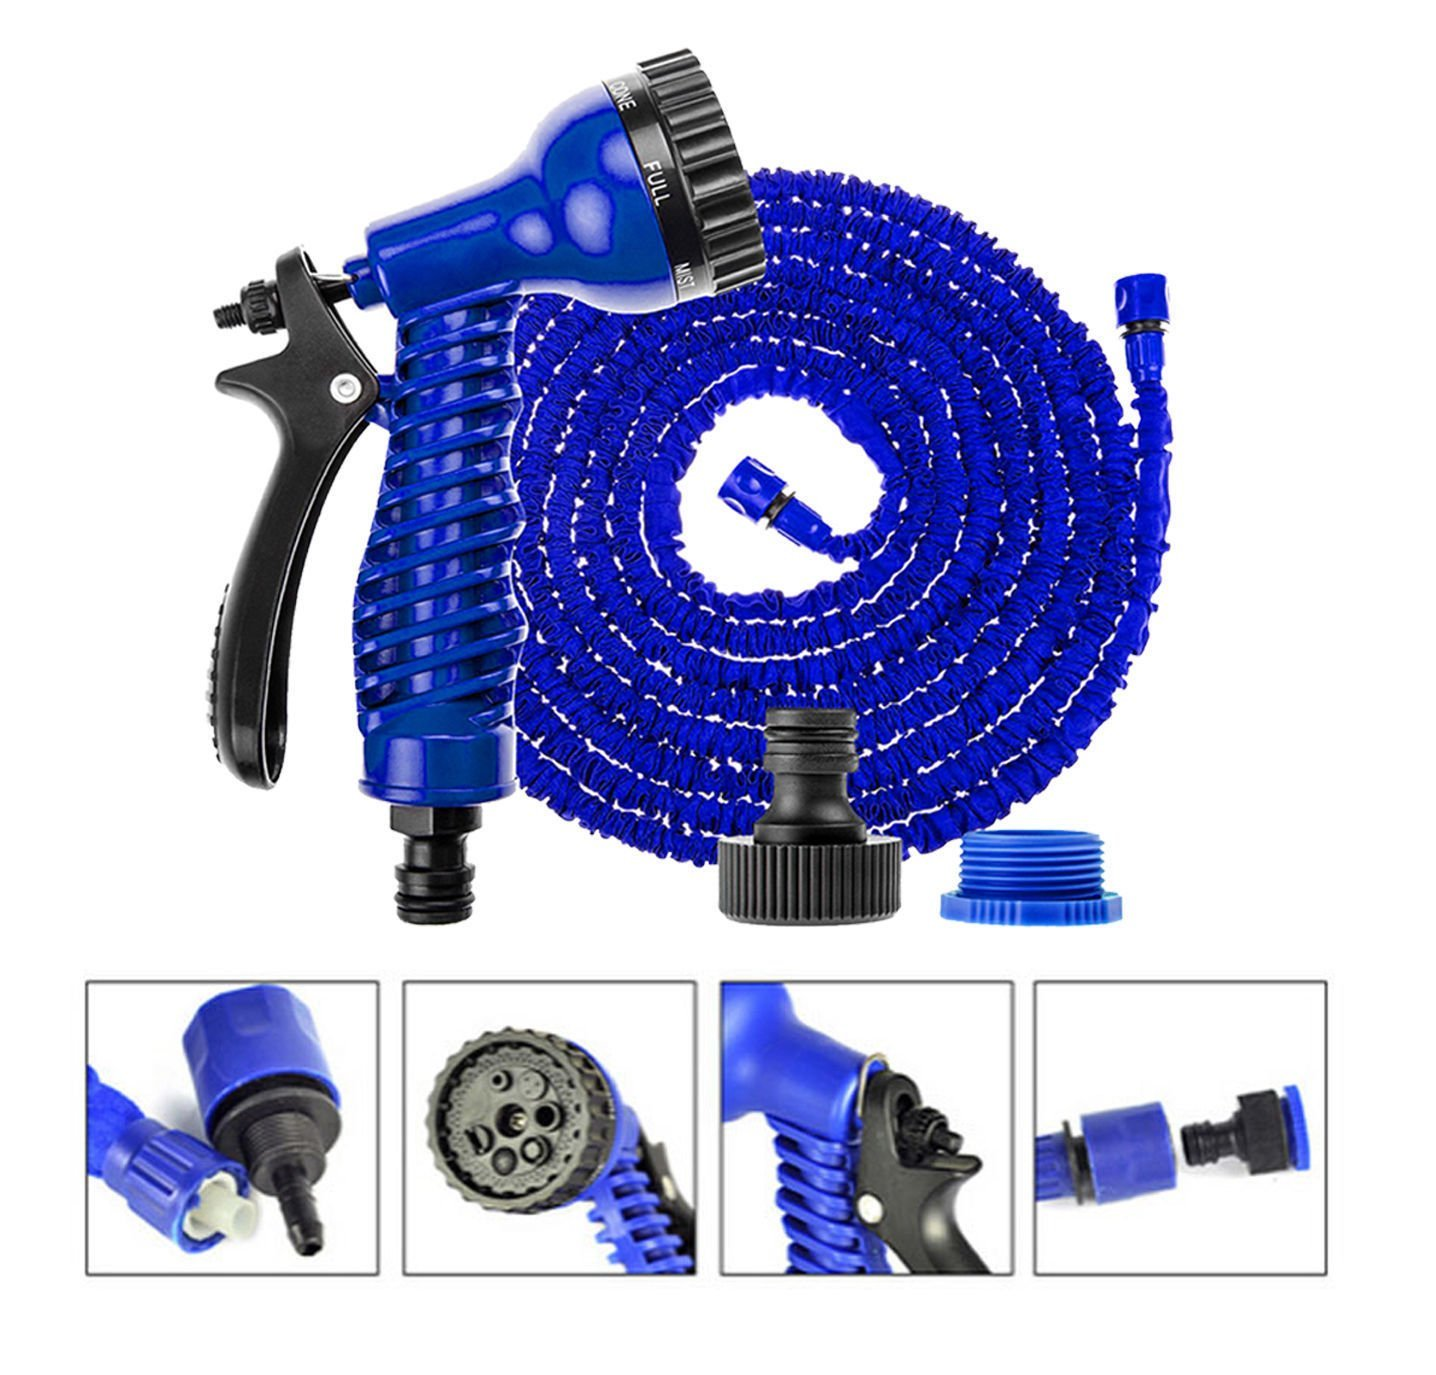 dicn Expandable Hose Pipe 200FT with 7 Function Spray Gun Magic Garden Hosepipe Flexible Blue for Watering Cleaning Washing Cars Pets dicn factory